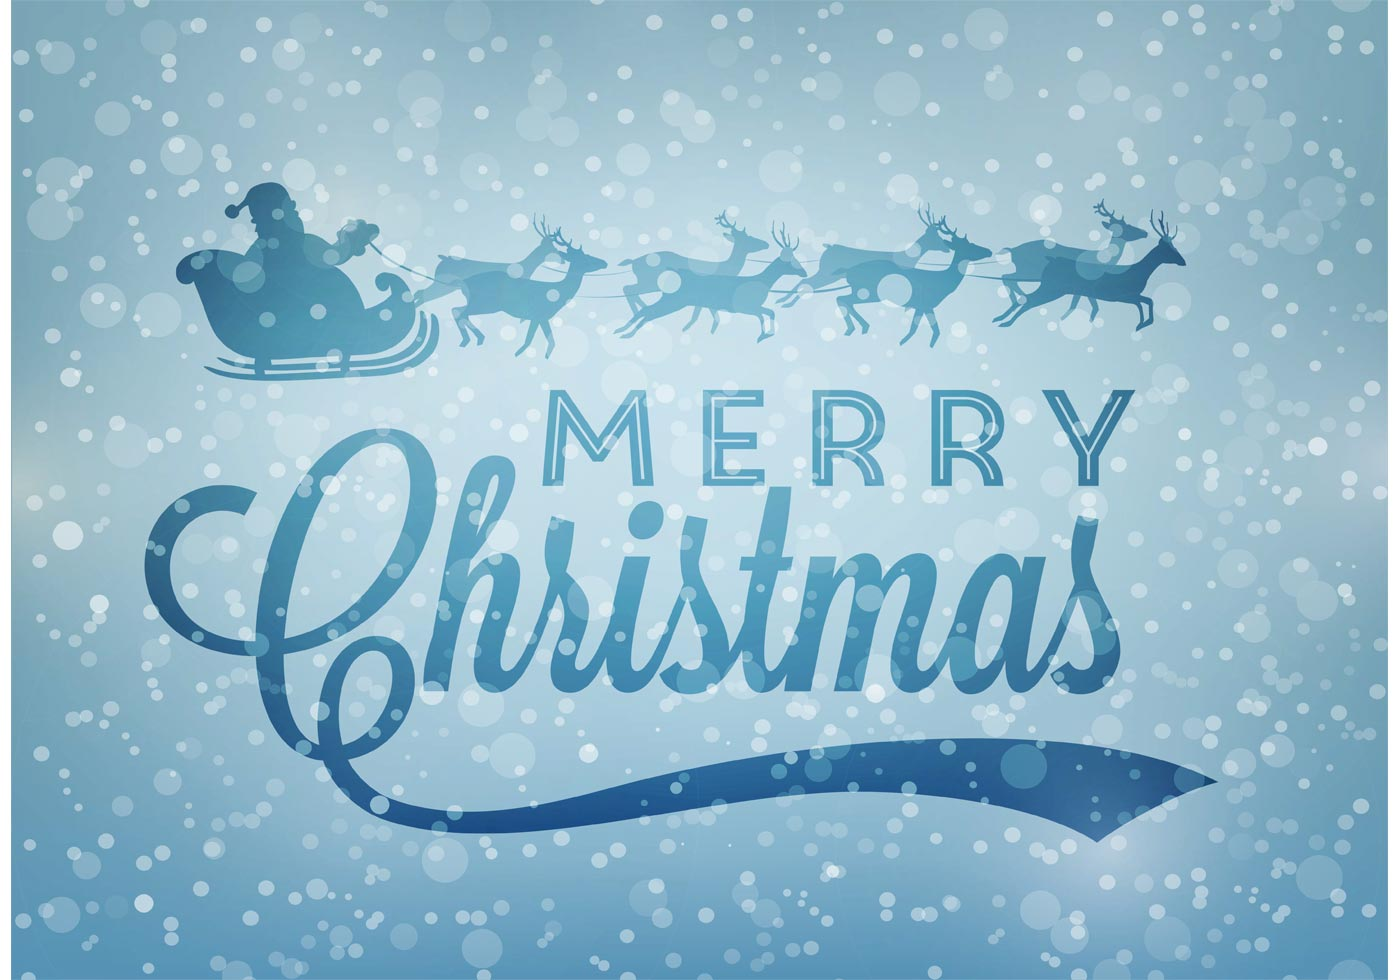 Download Snow Fall Animated Wallpaper Vector Snow Fall Christmas Background Download Free